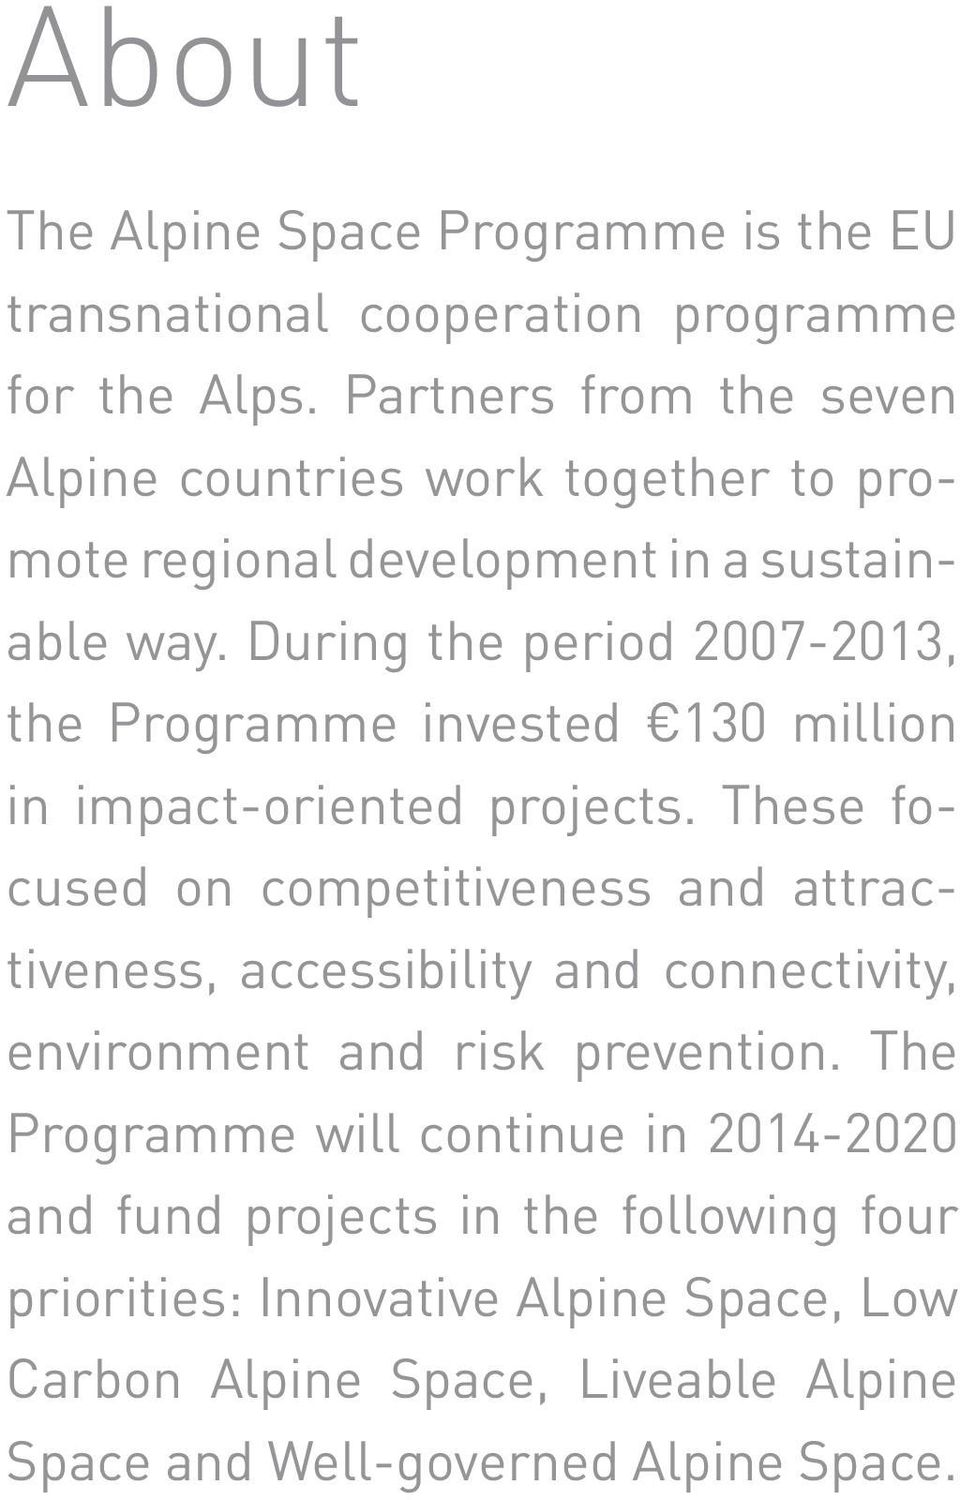 During the period 2007-2013, the Programme invested 130 million in impact-oriented projects.